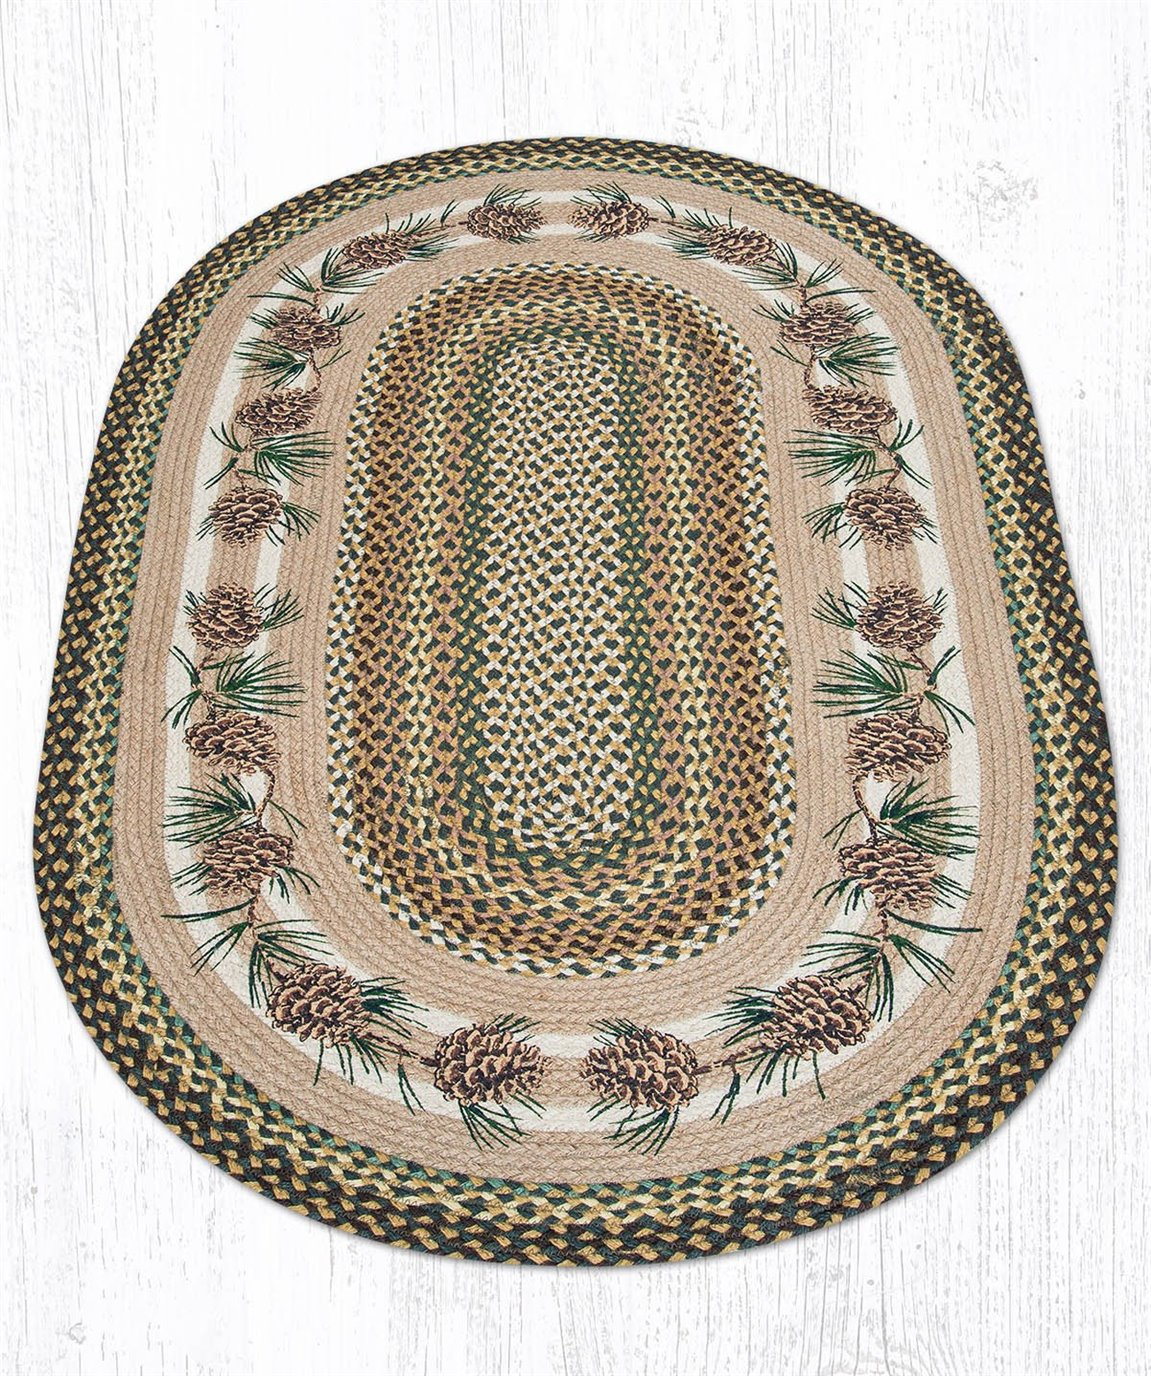 Needles & Cones Oval Braided Rug 3'x5'